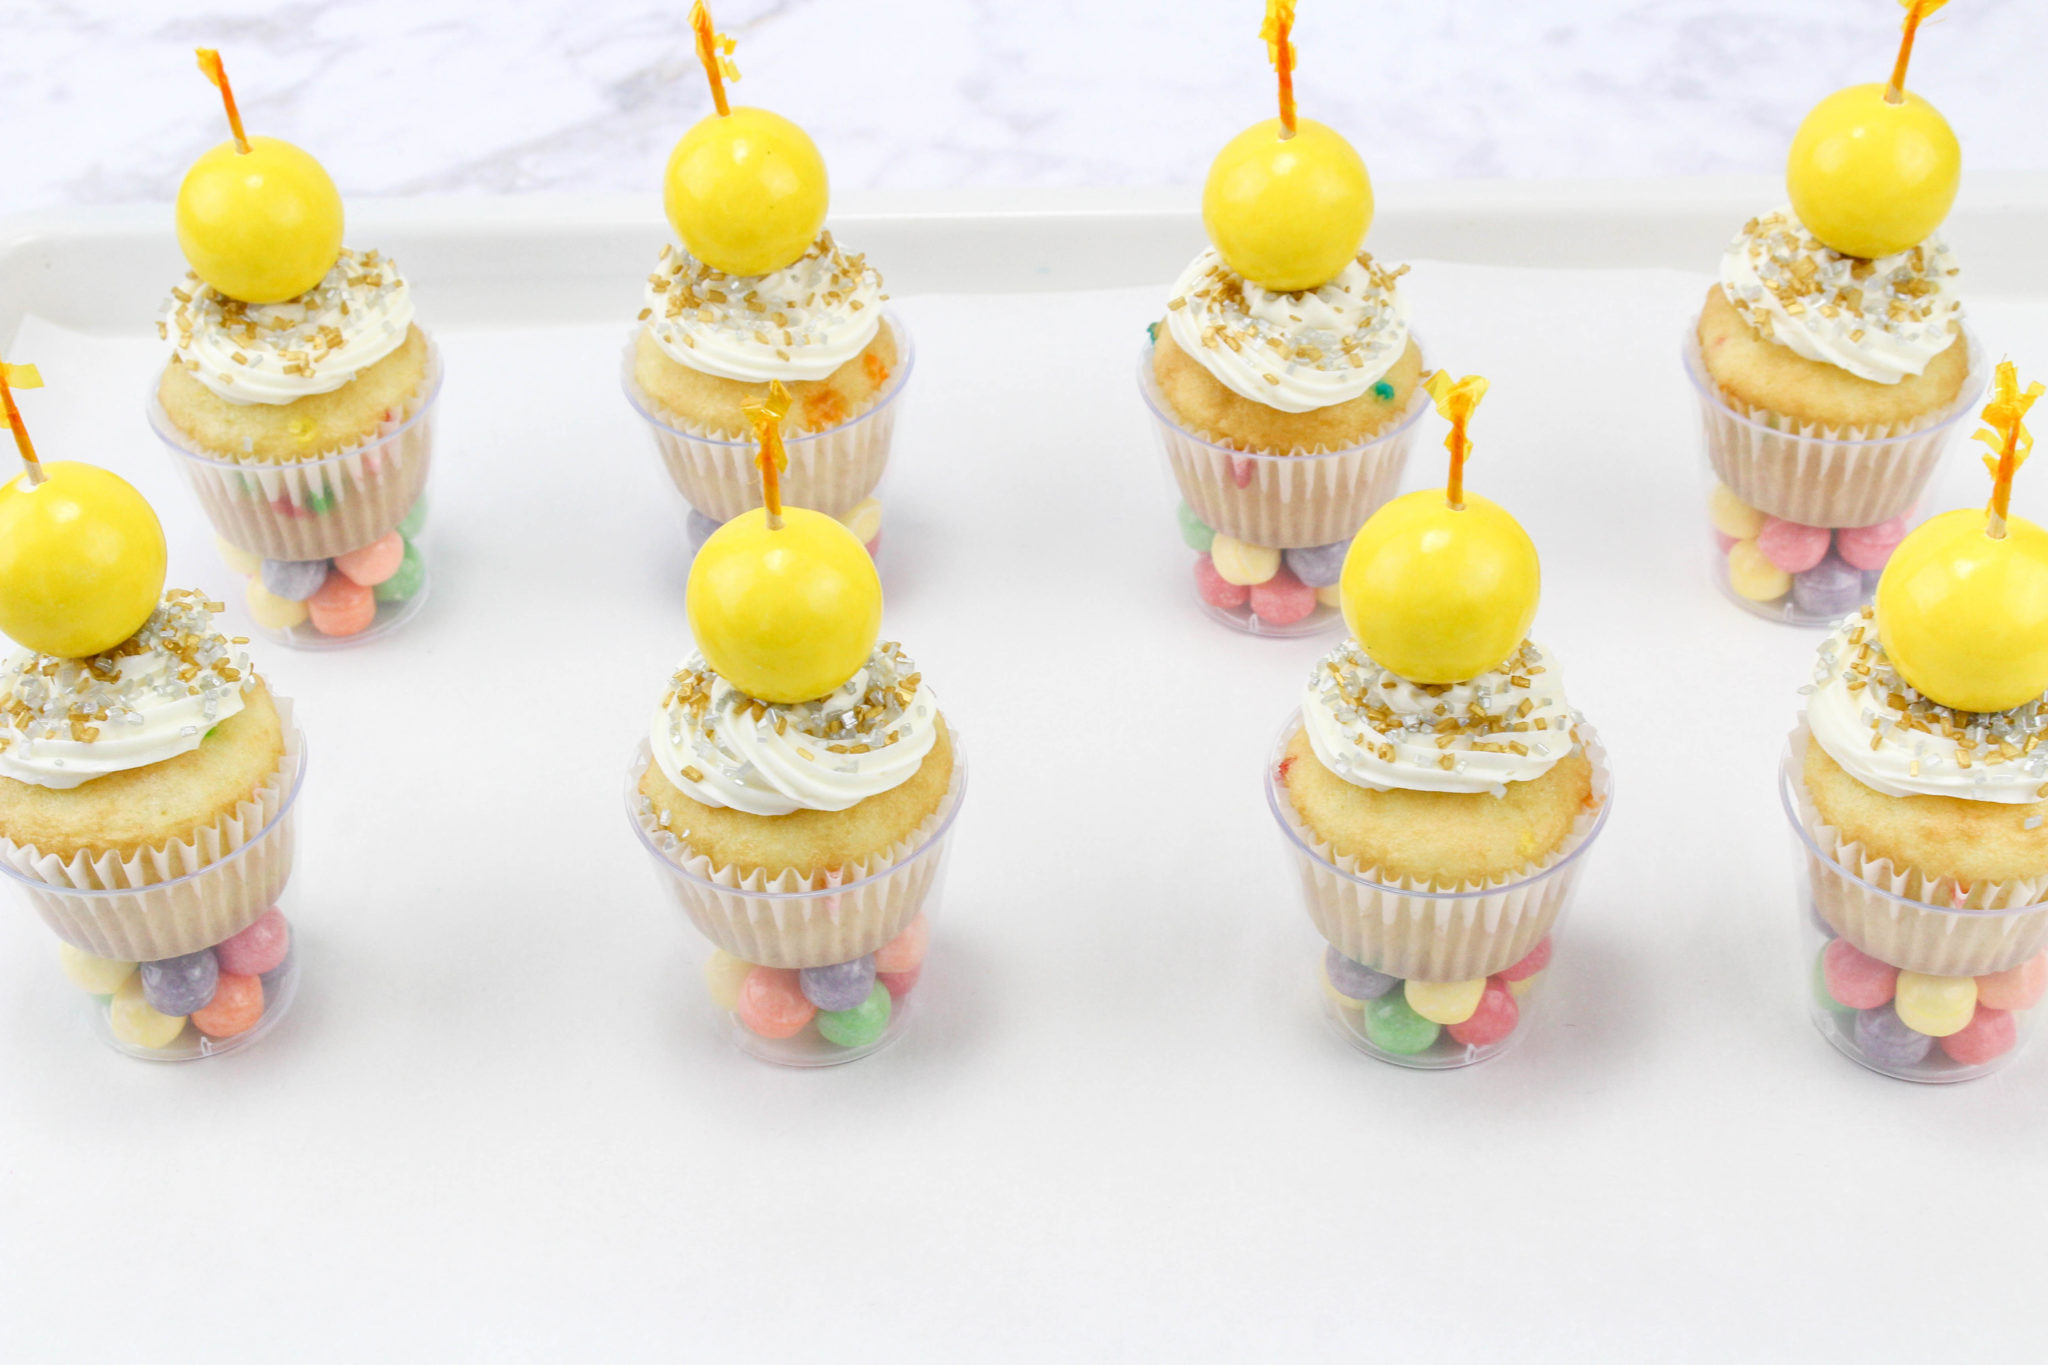 If you're looking for a fun sweet treat to serve on New Year's Eve, try making some of these New Year's Eve Ball Drop Cupcakes for a festive dessert.